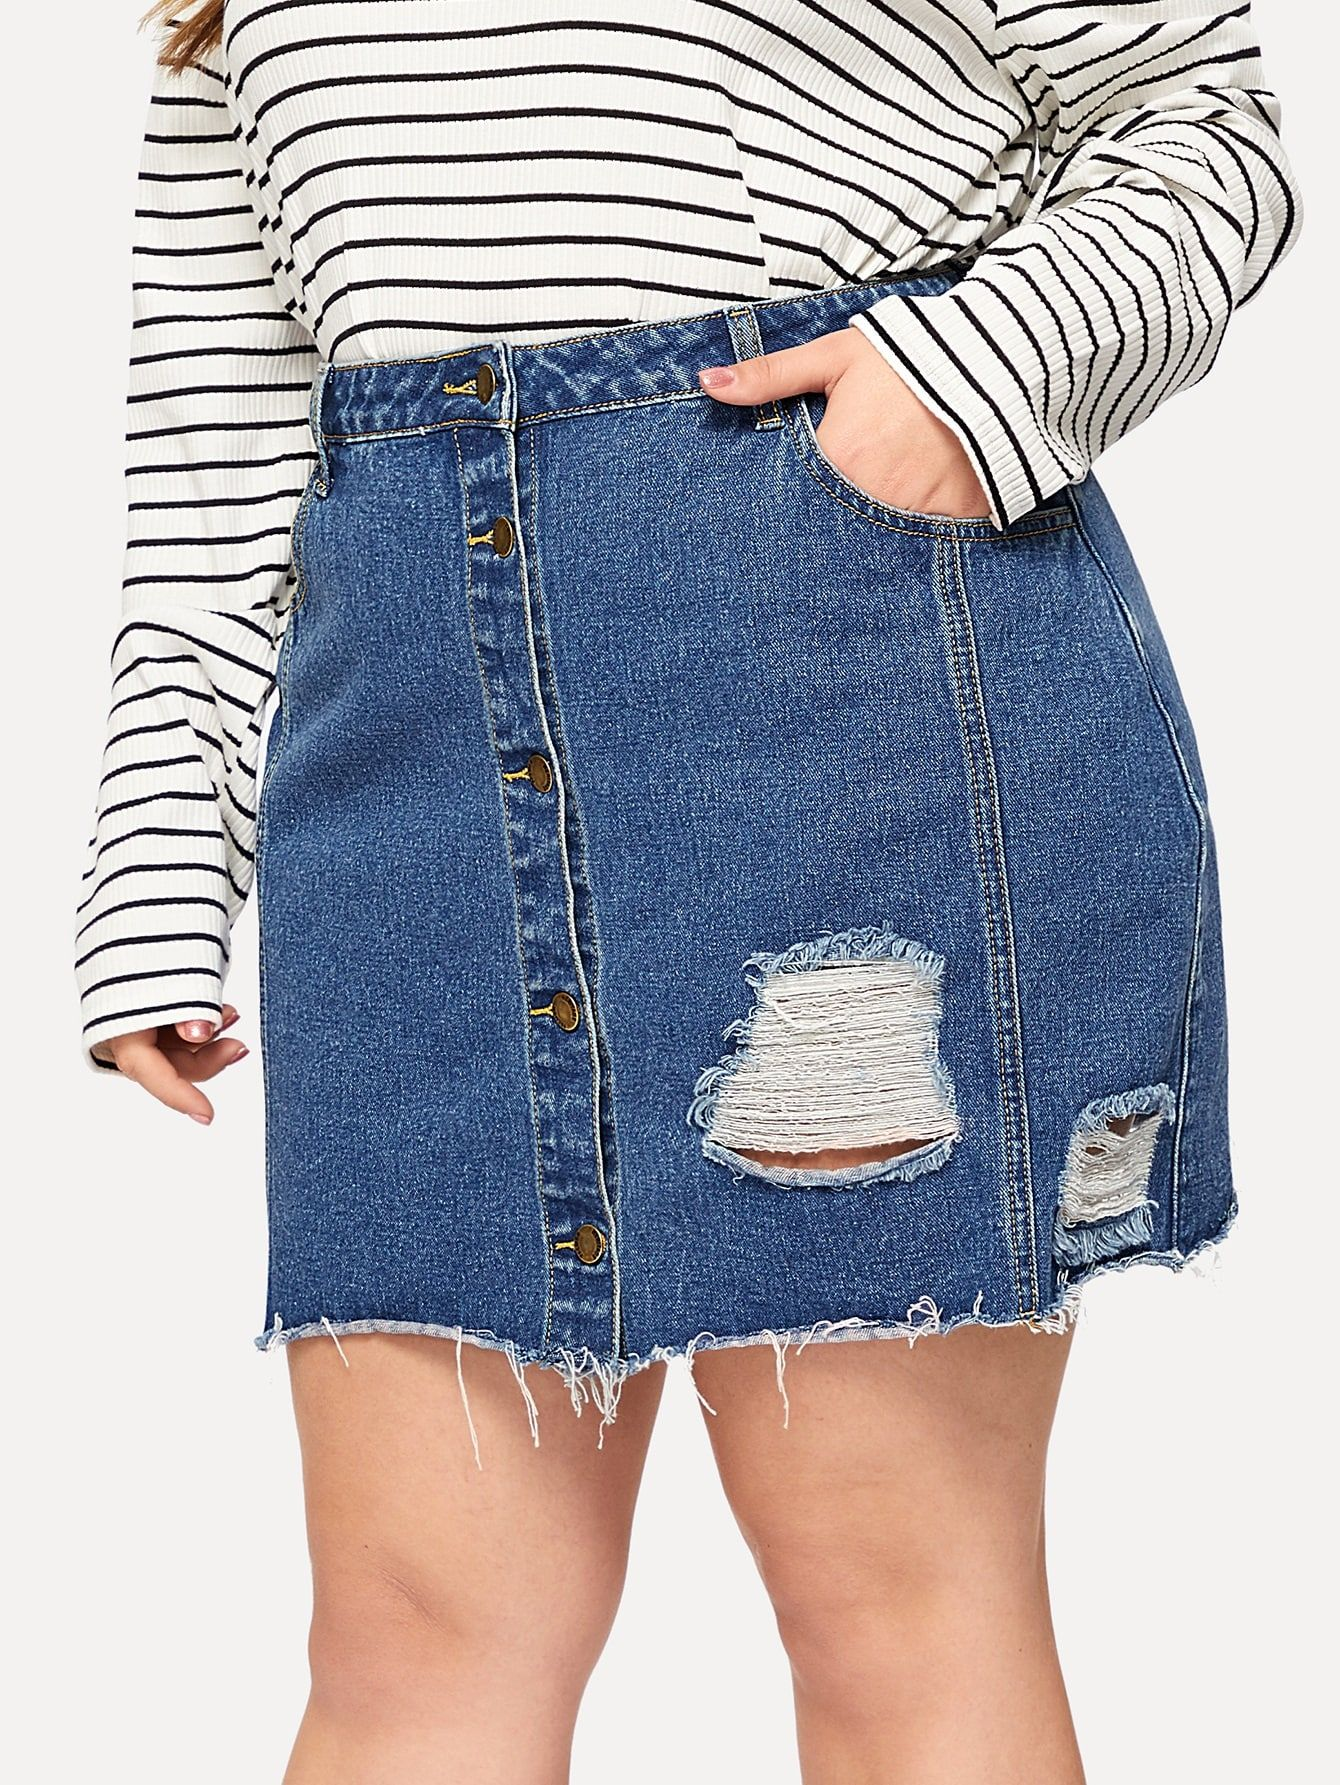 save off buying now best supplier Plus Slant Pocket Button Front Ripped Denim Skirt | CLOTHES ...